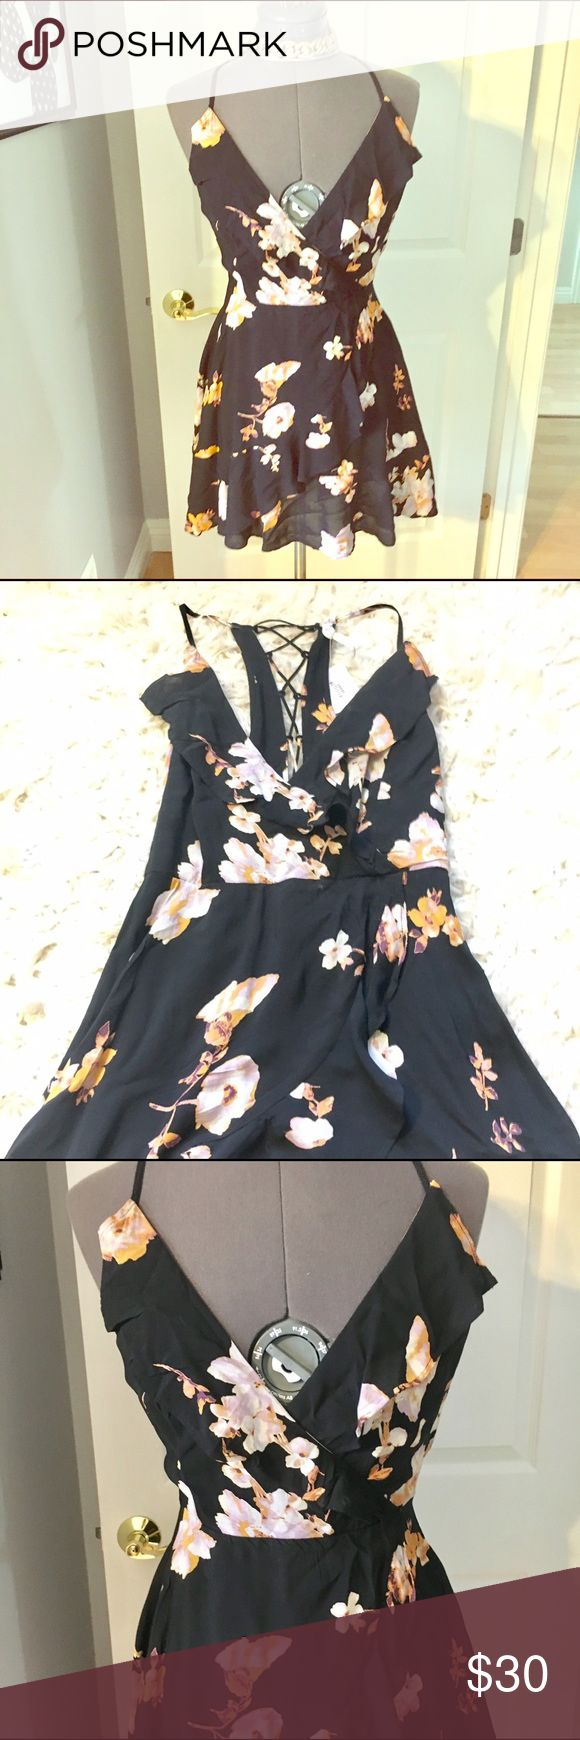 ⭐️NWT❤️ urban outfitters floral cami dress Feminine faux wrap dress with lace up back detail. Front bodice and skirt have fixed wrap look with ruffle. Zipper closure Urban Outfitters Dresses Mini